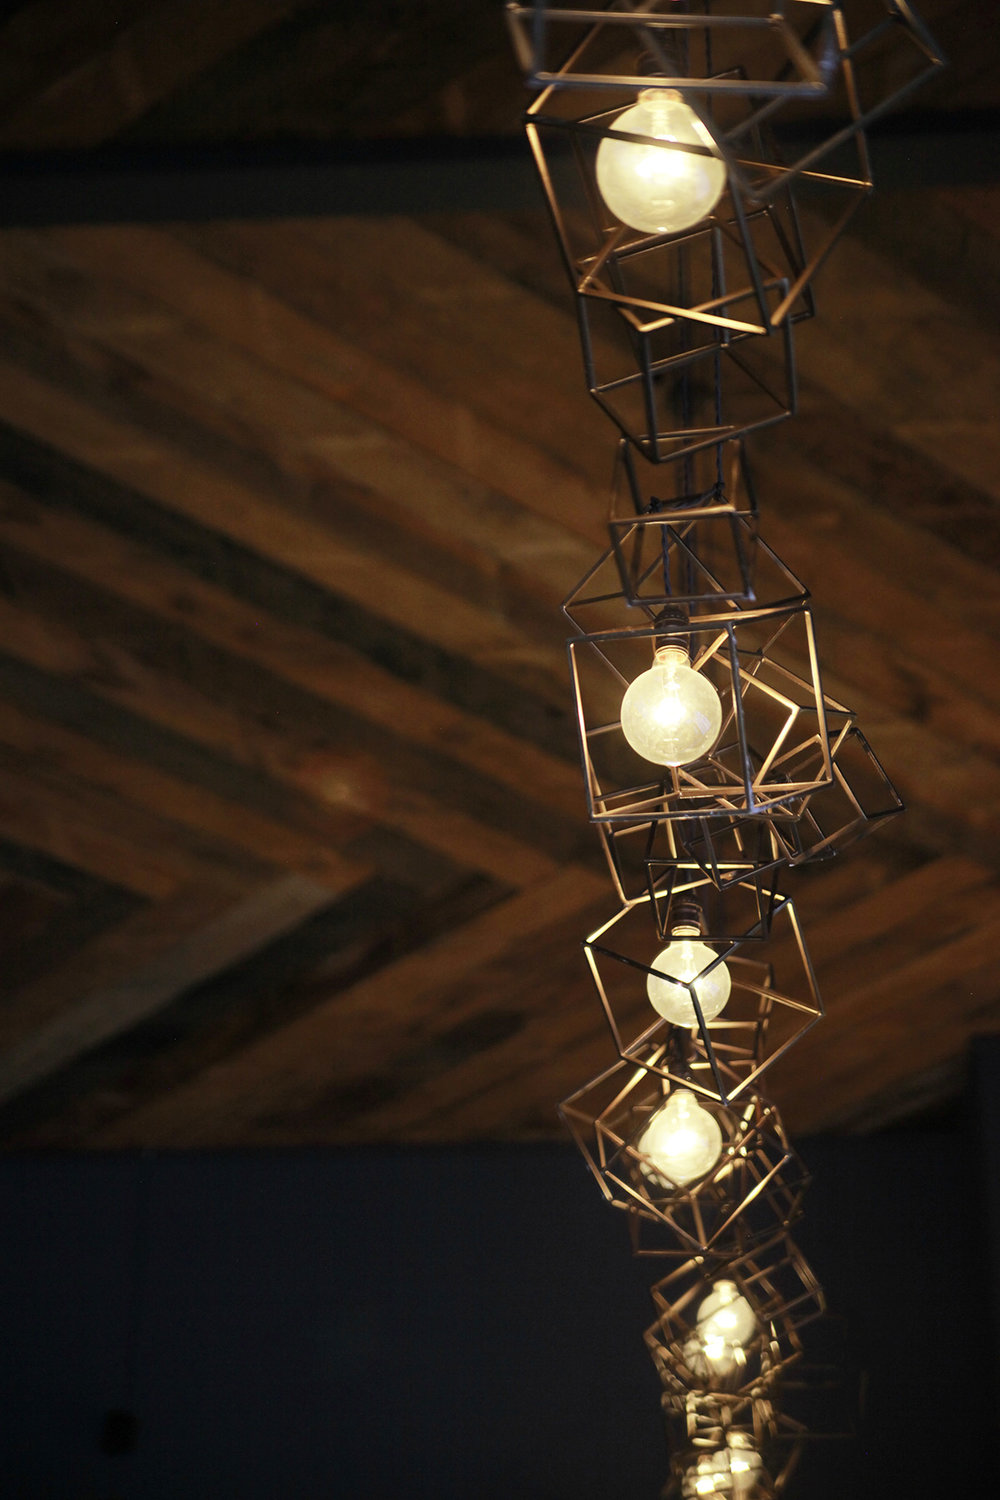 Studio HHH_Madera_8_Custom Made Light Fixtures.jpg